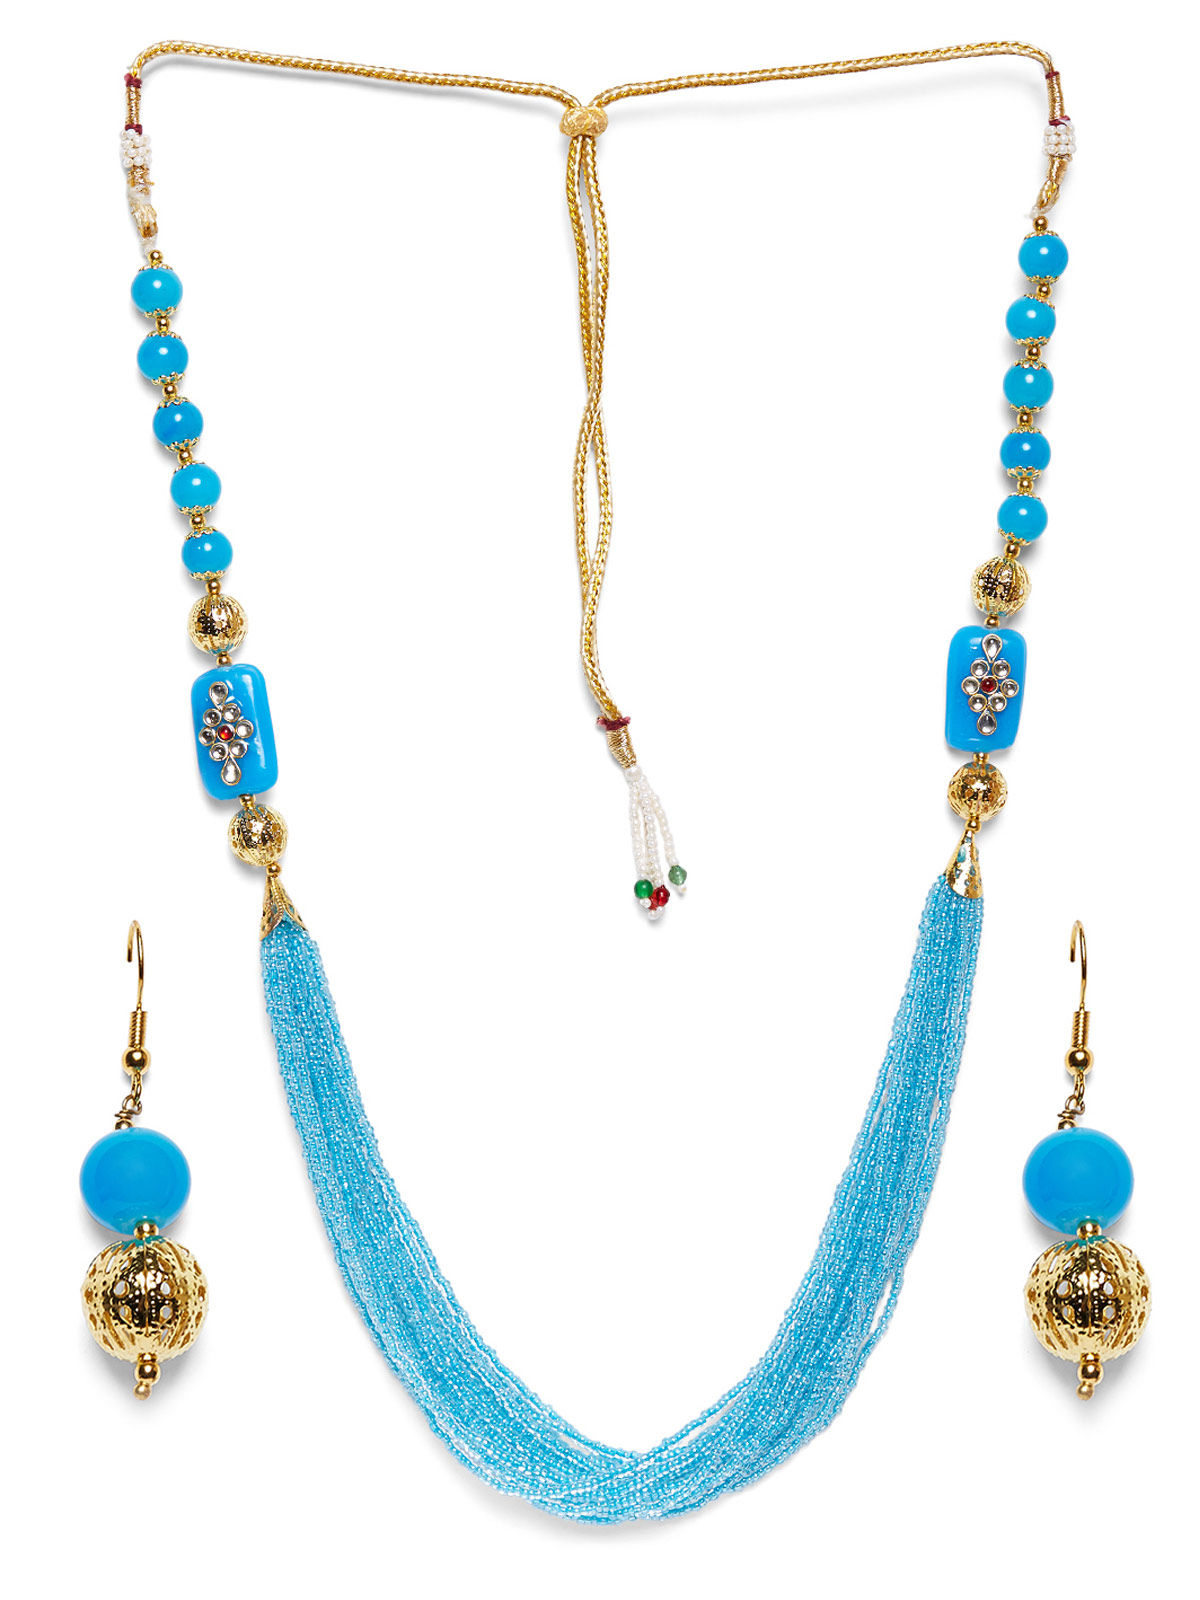 Imli Street blue beaded neckpiece and earrings set